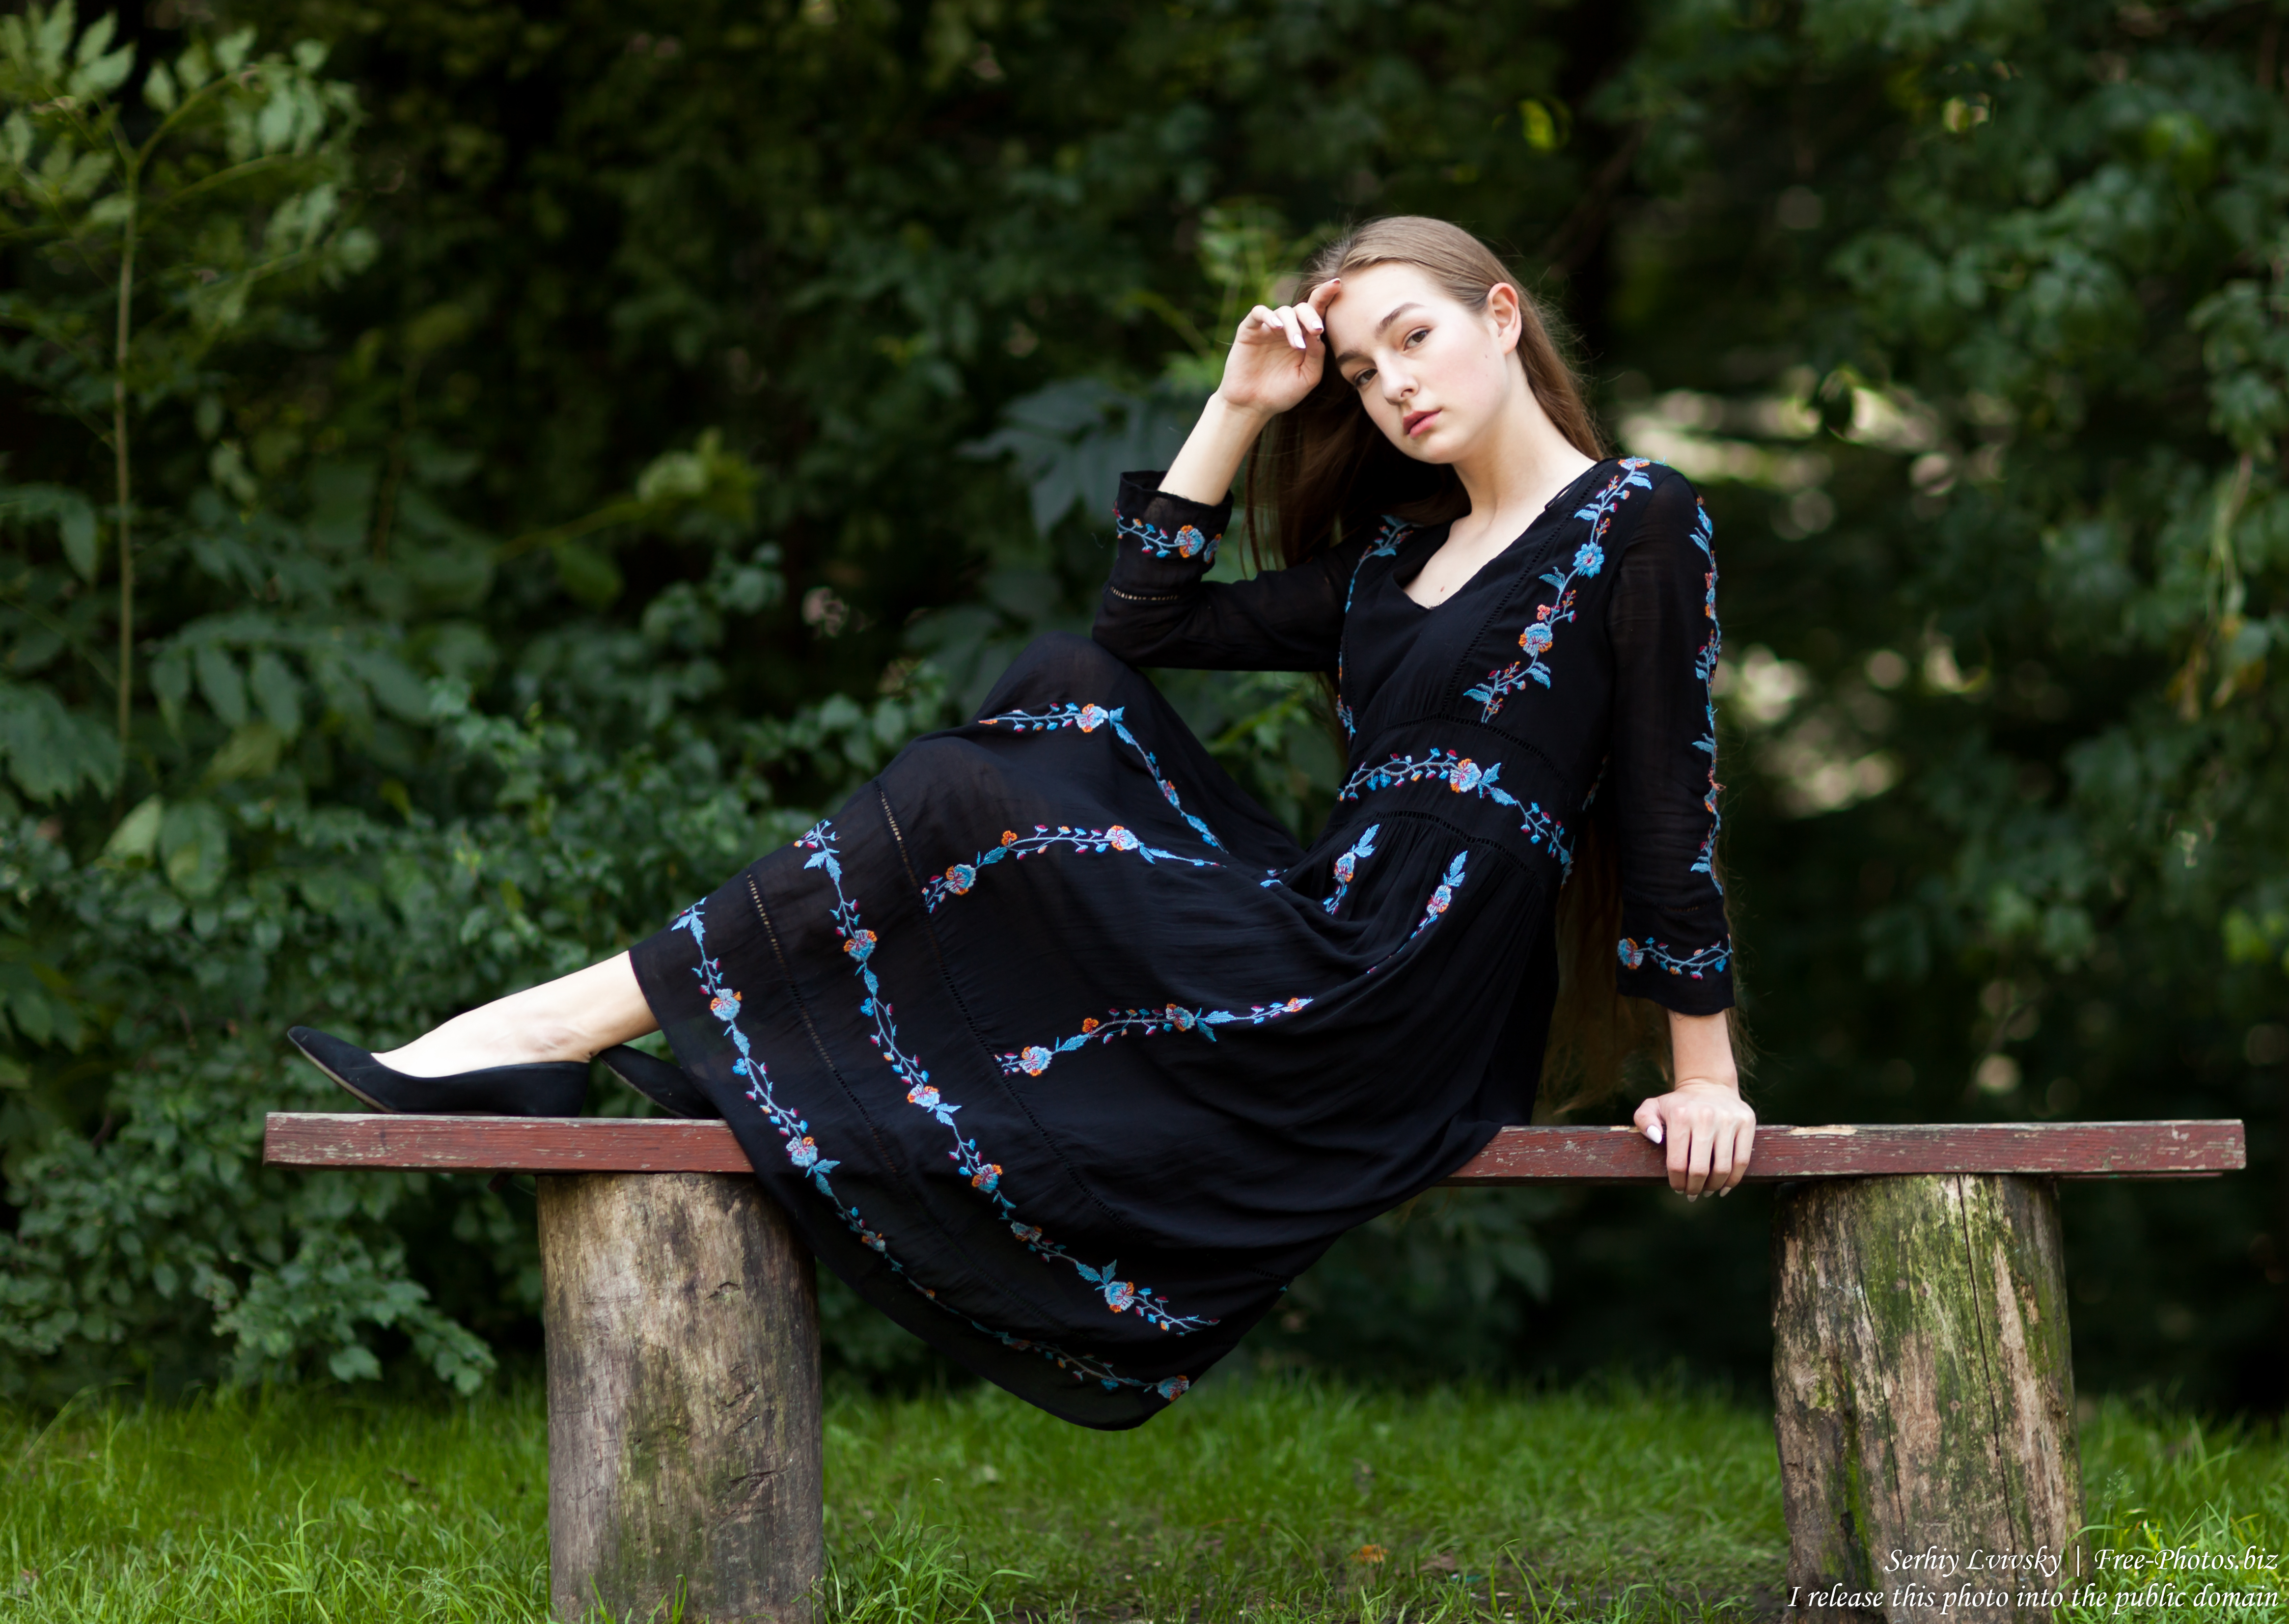 Justyna - a 16-year-old fair-haired girl photographed in June 2018 by Serhiy Lvivsky, picture 16